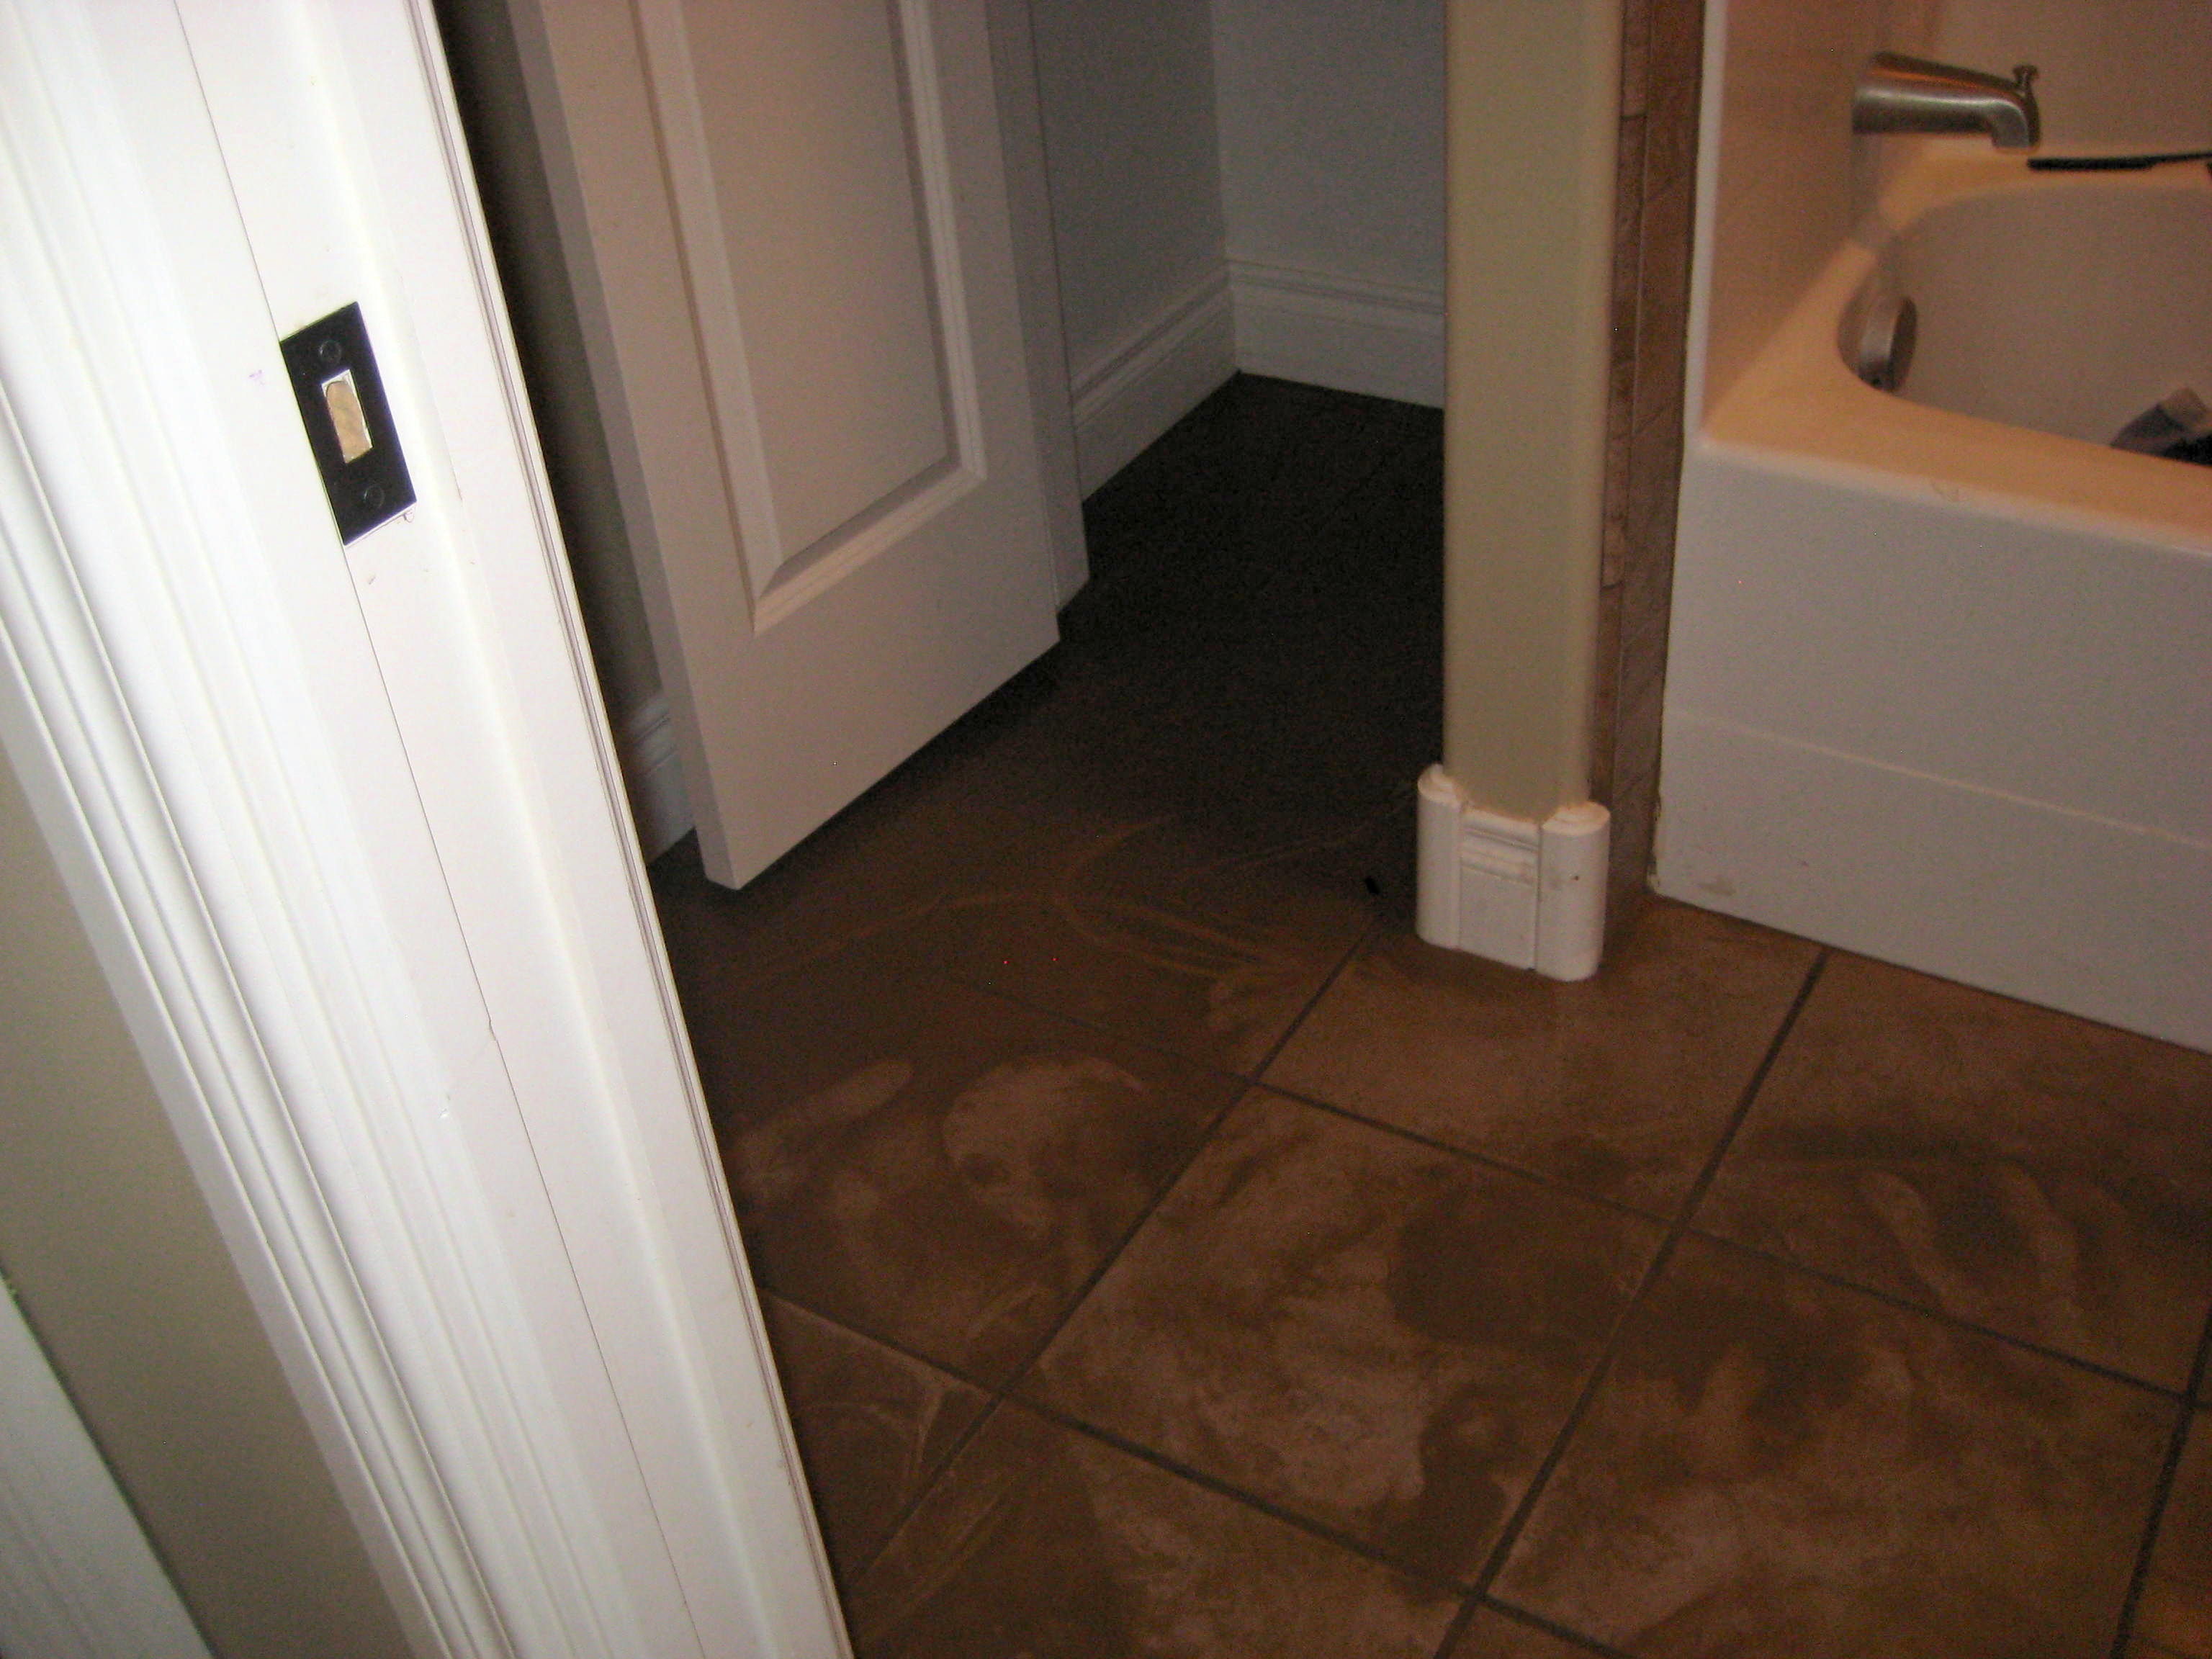 Repair Bathroom Floor Bathroom Floor Repair Water Damage Bethfalkwritescom